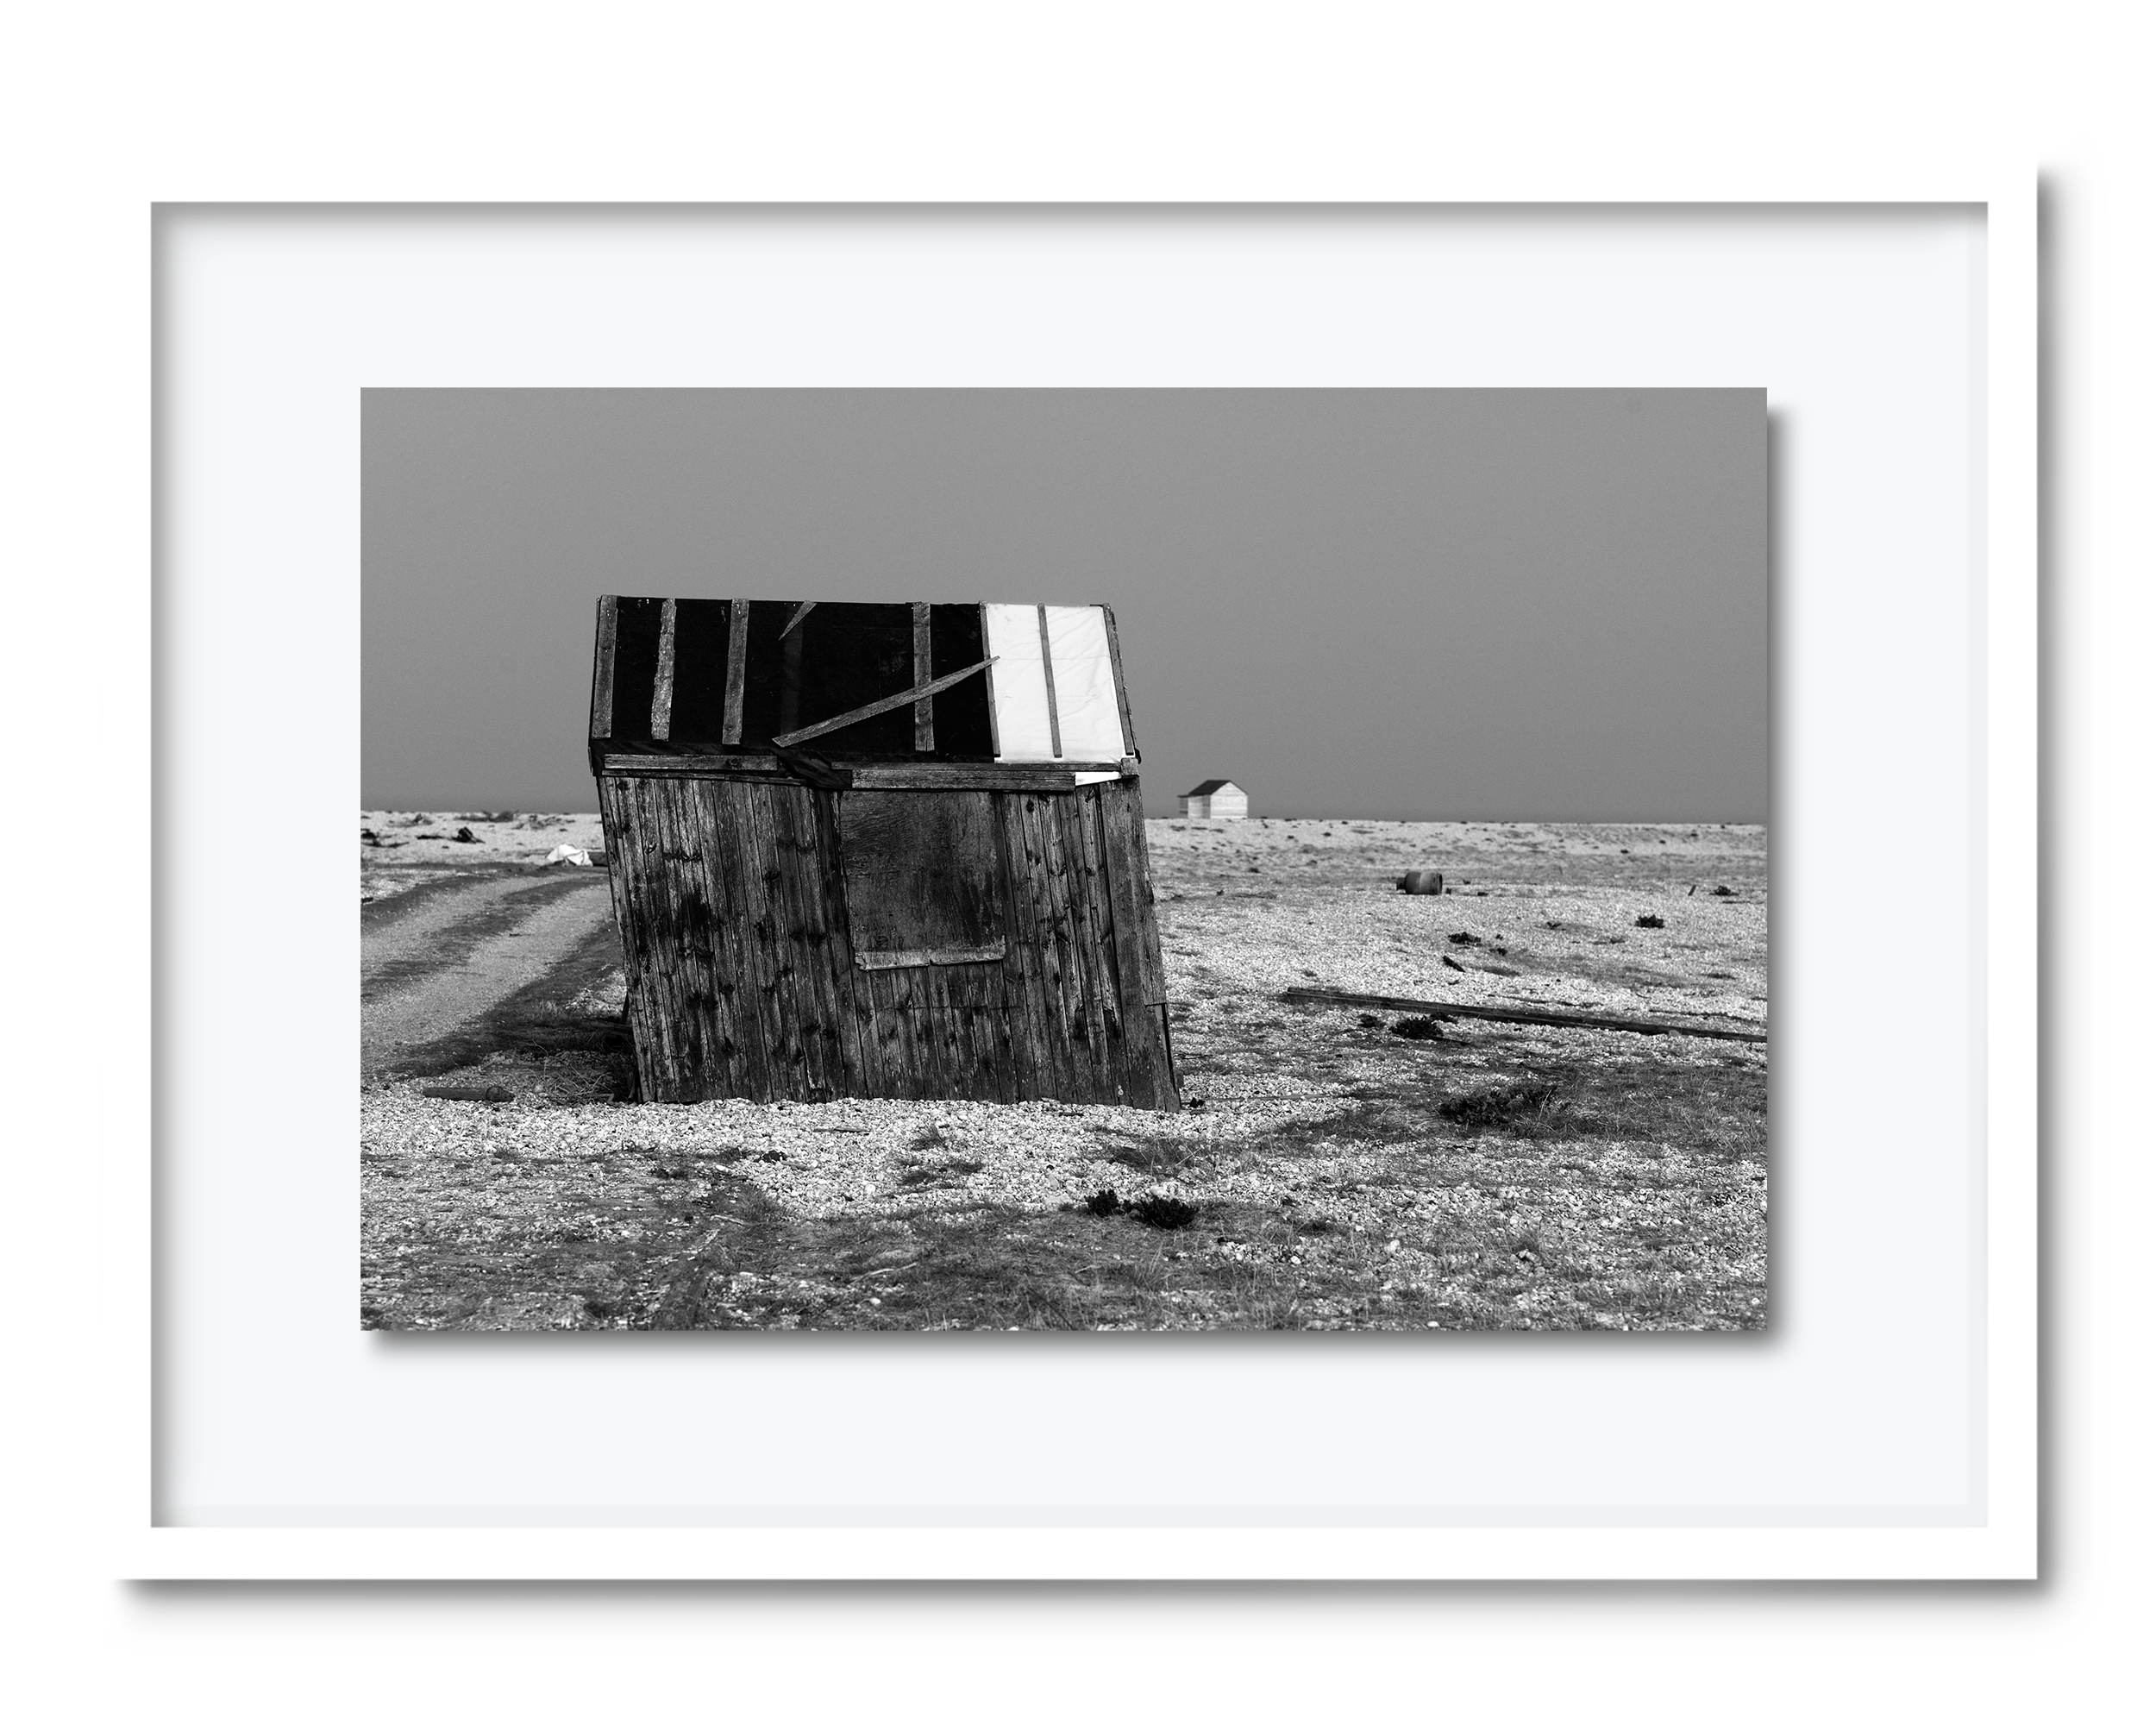 29.david-pearce-dungeness4.png